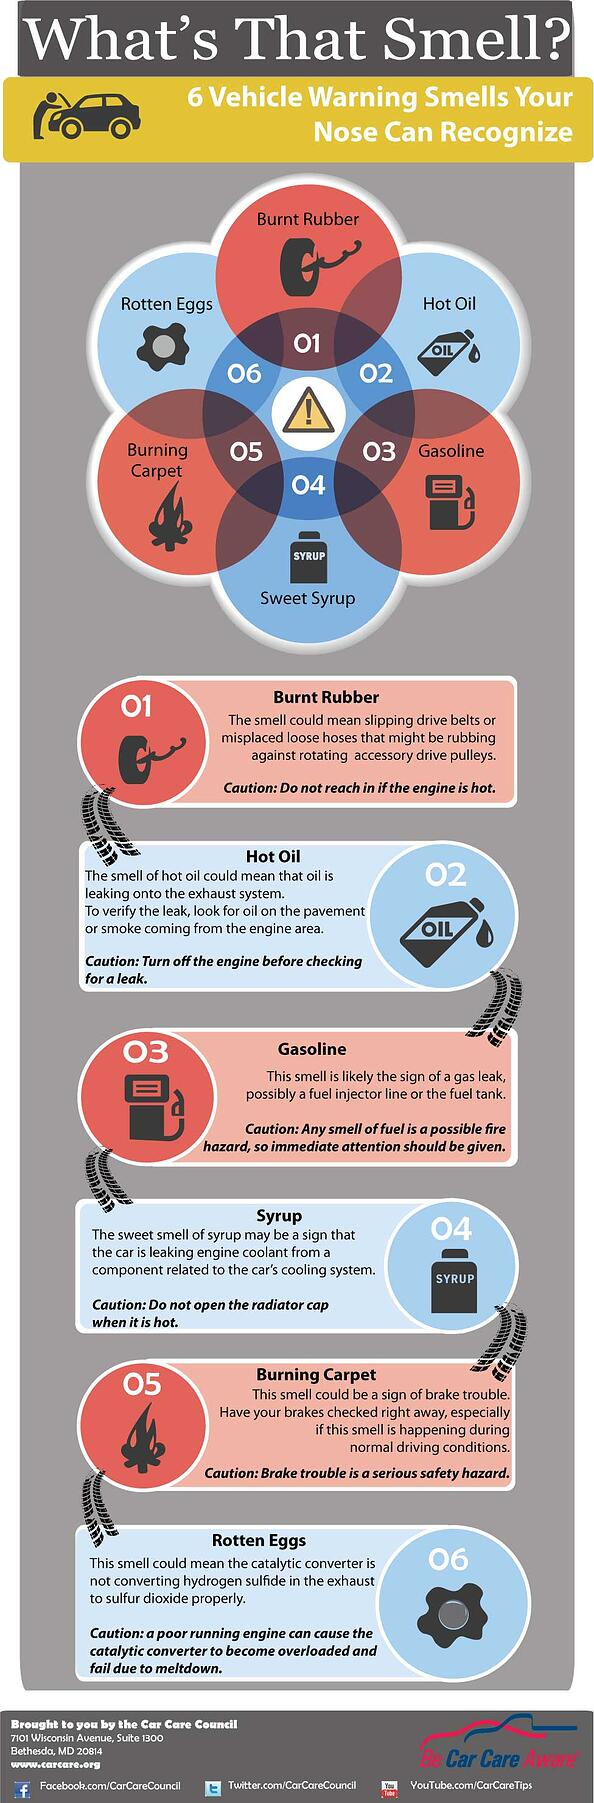 6 warning smells to be aware of